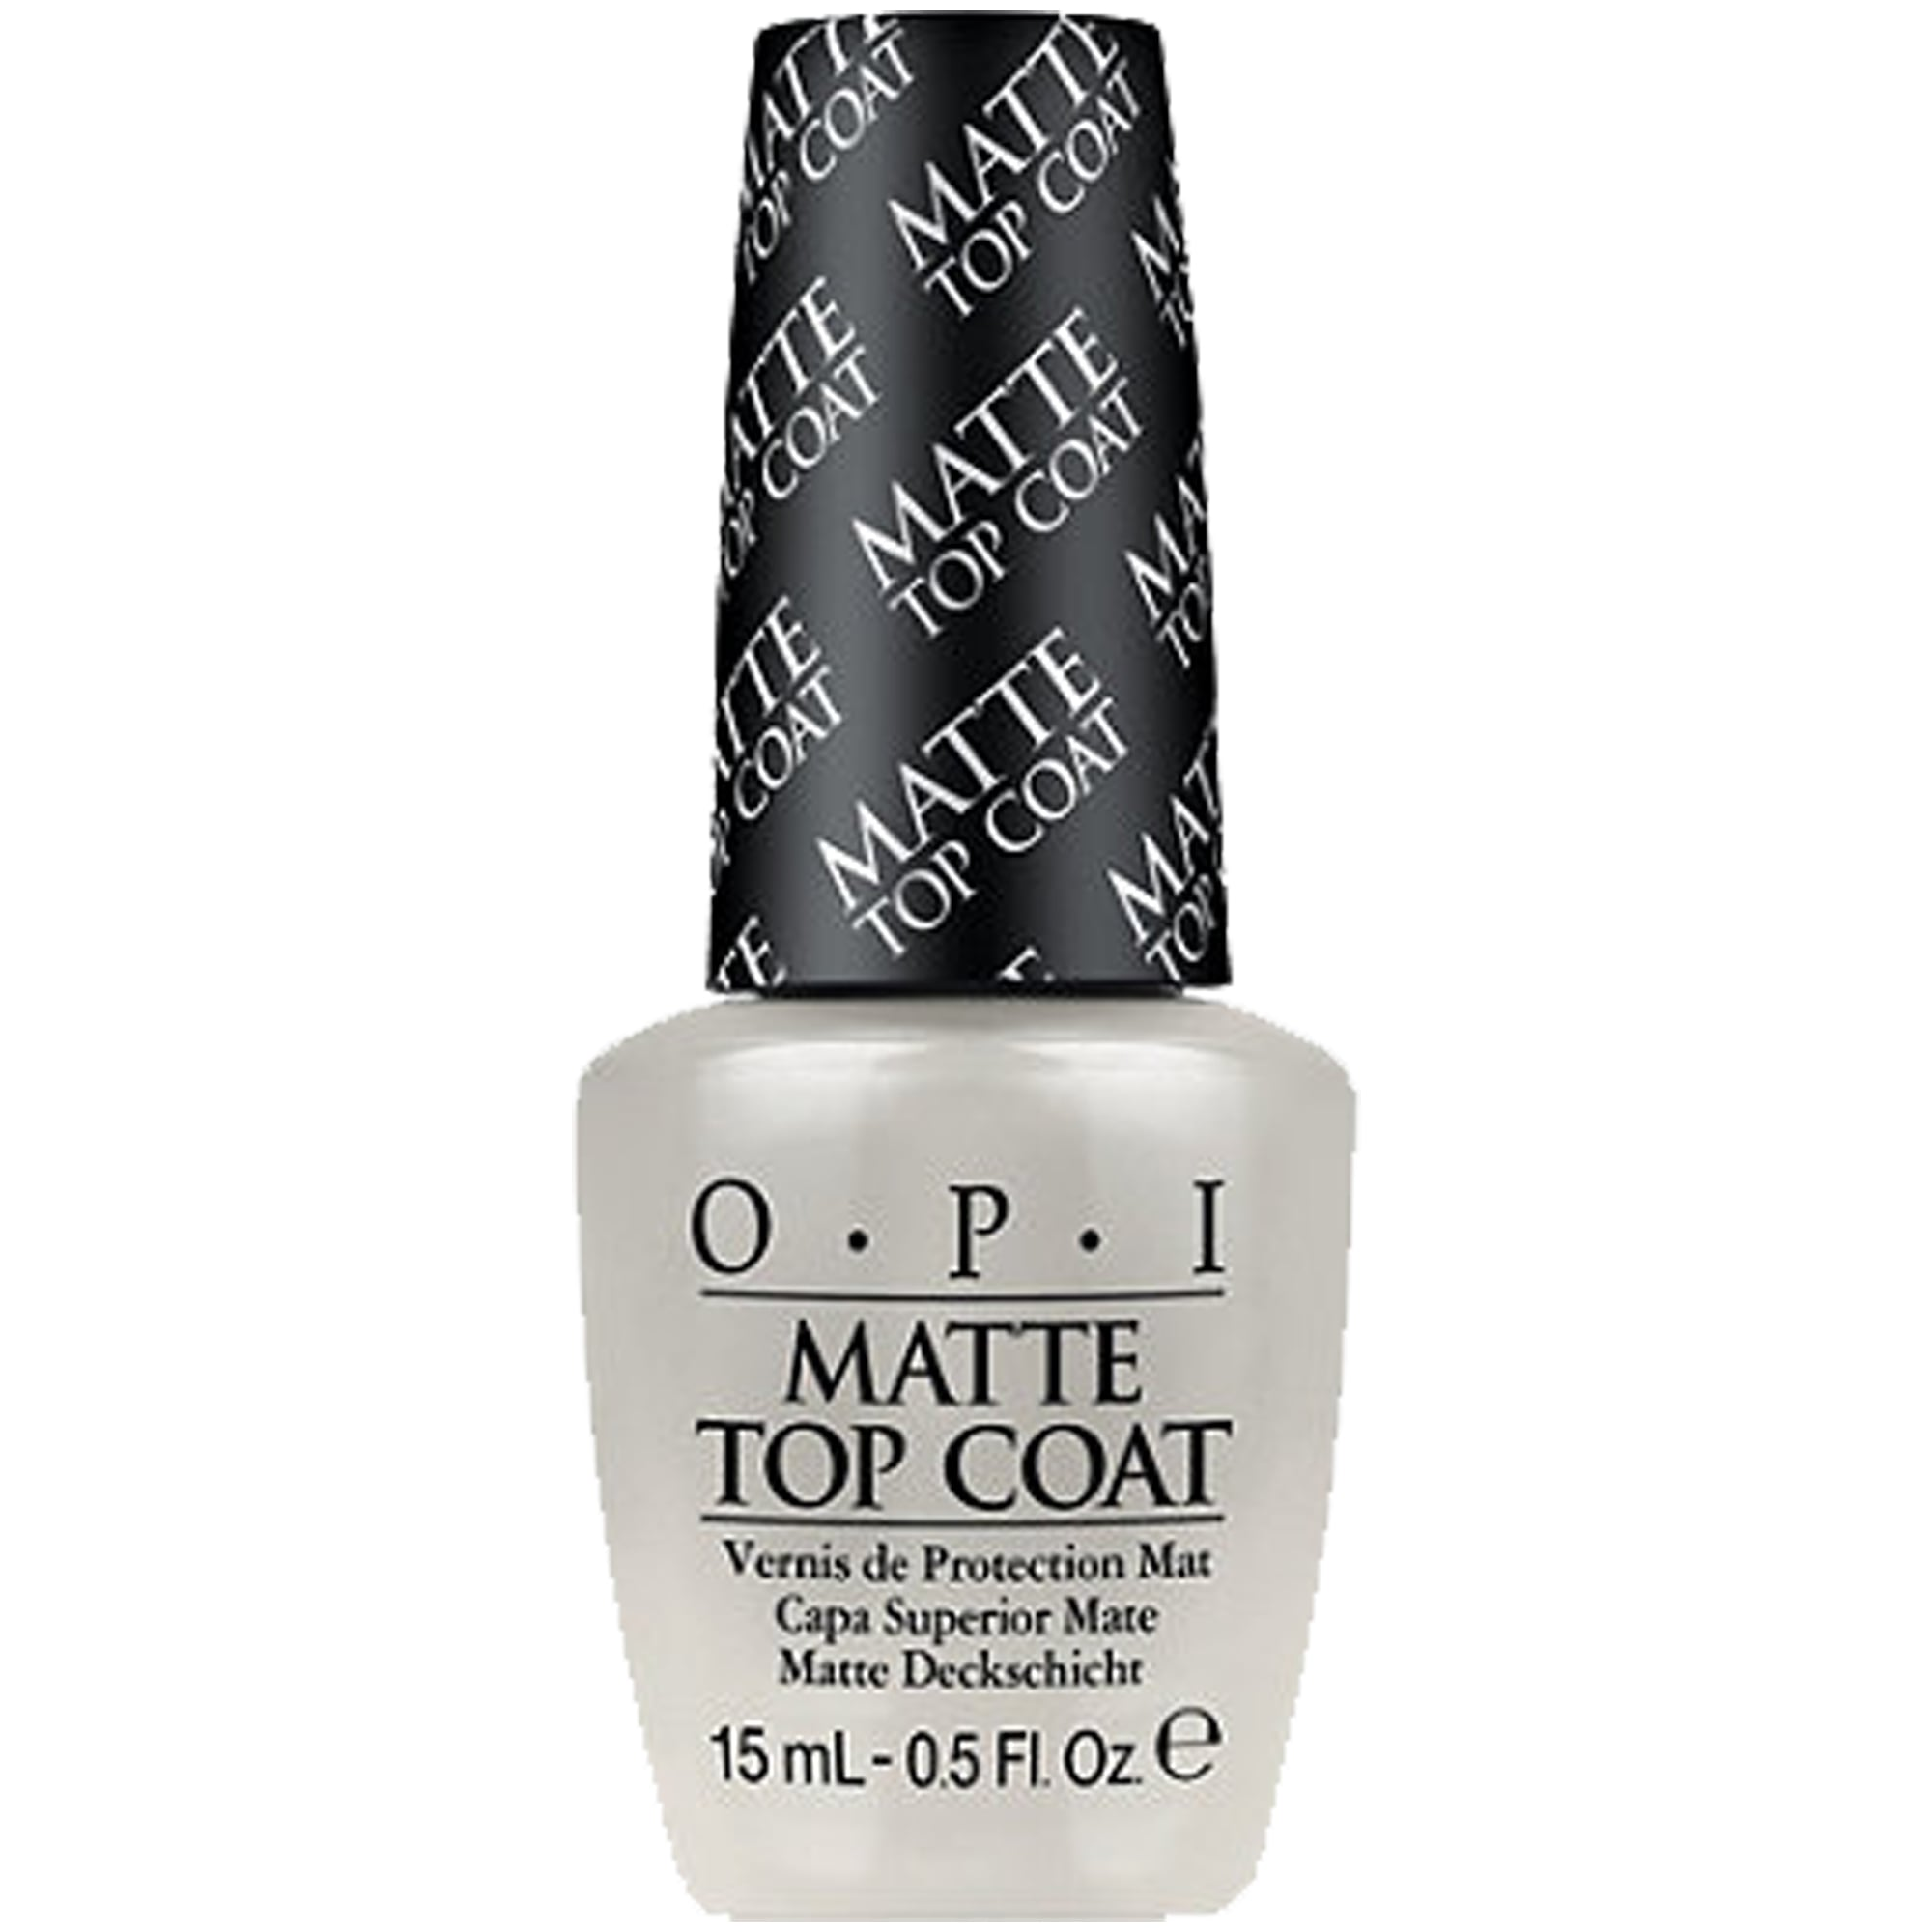 OPI Matte Nail Polish Top Coat (NT T35) 15ml